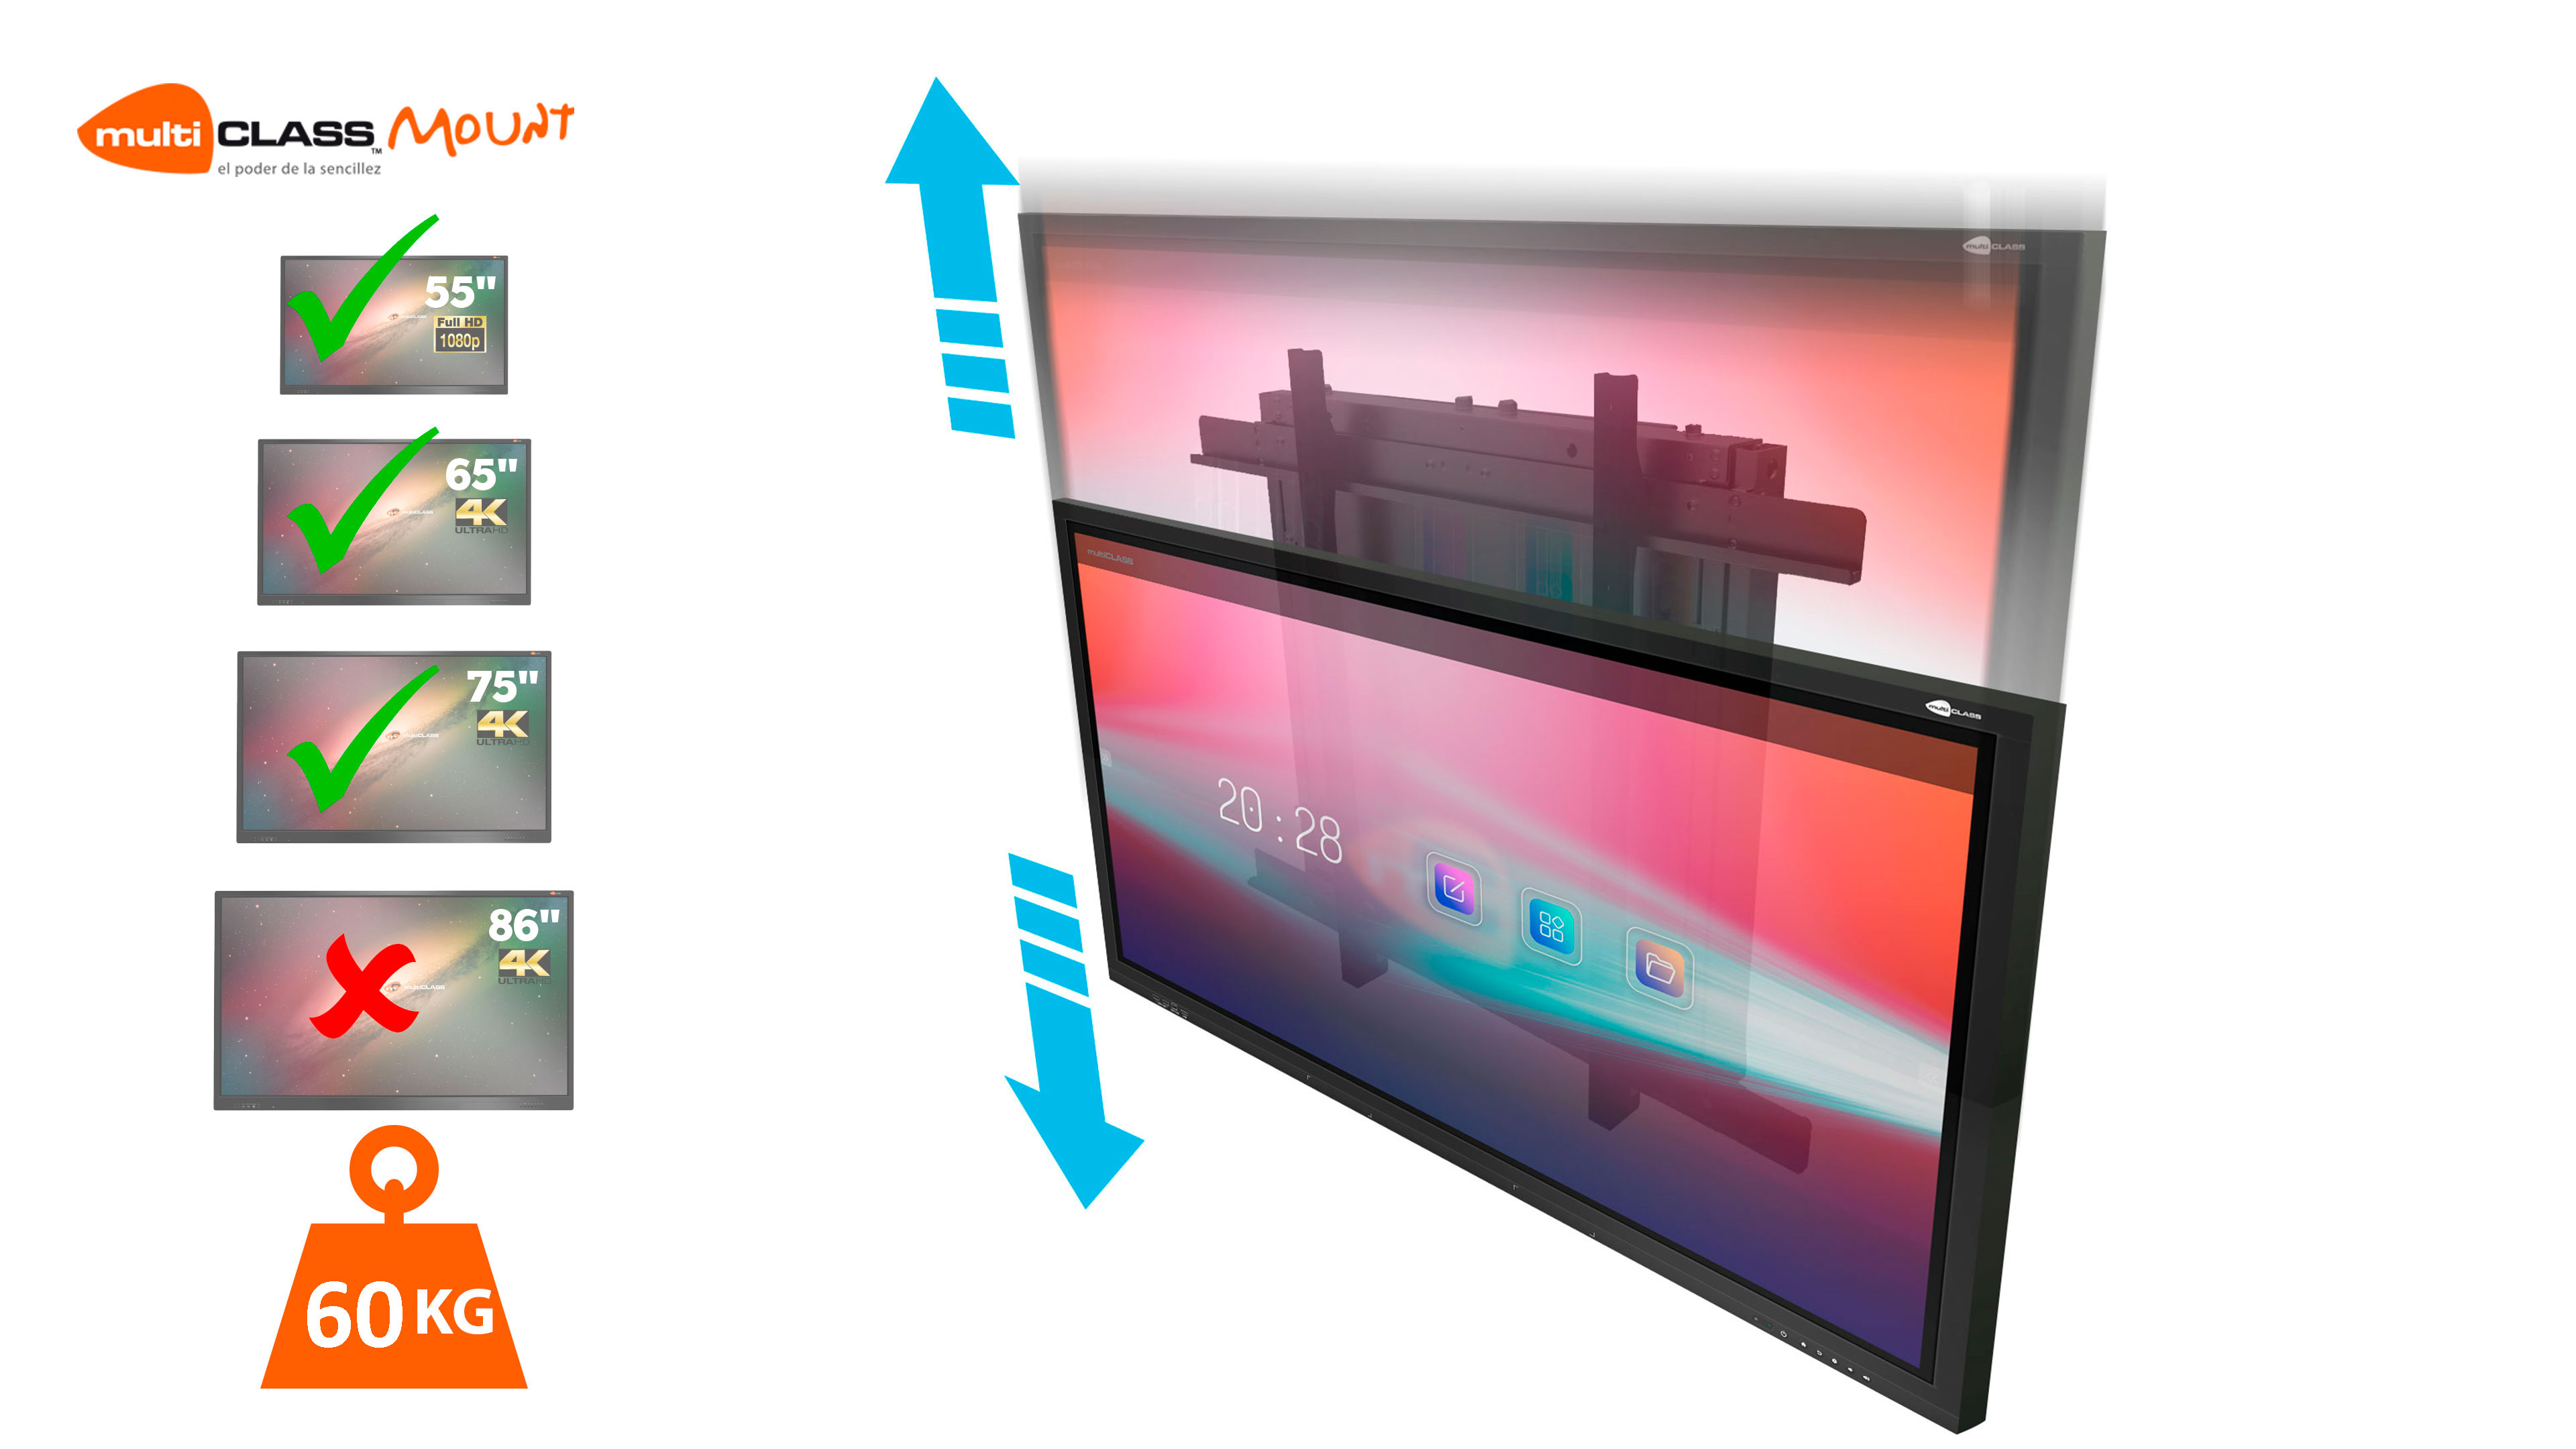 ADJUSTABLE WALL MOUNT Interactive Displays Mounts multiCLASS Mount